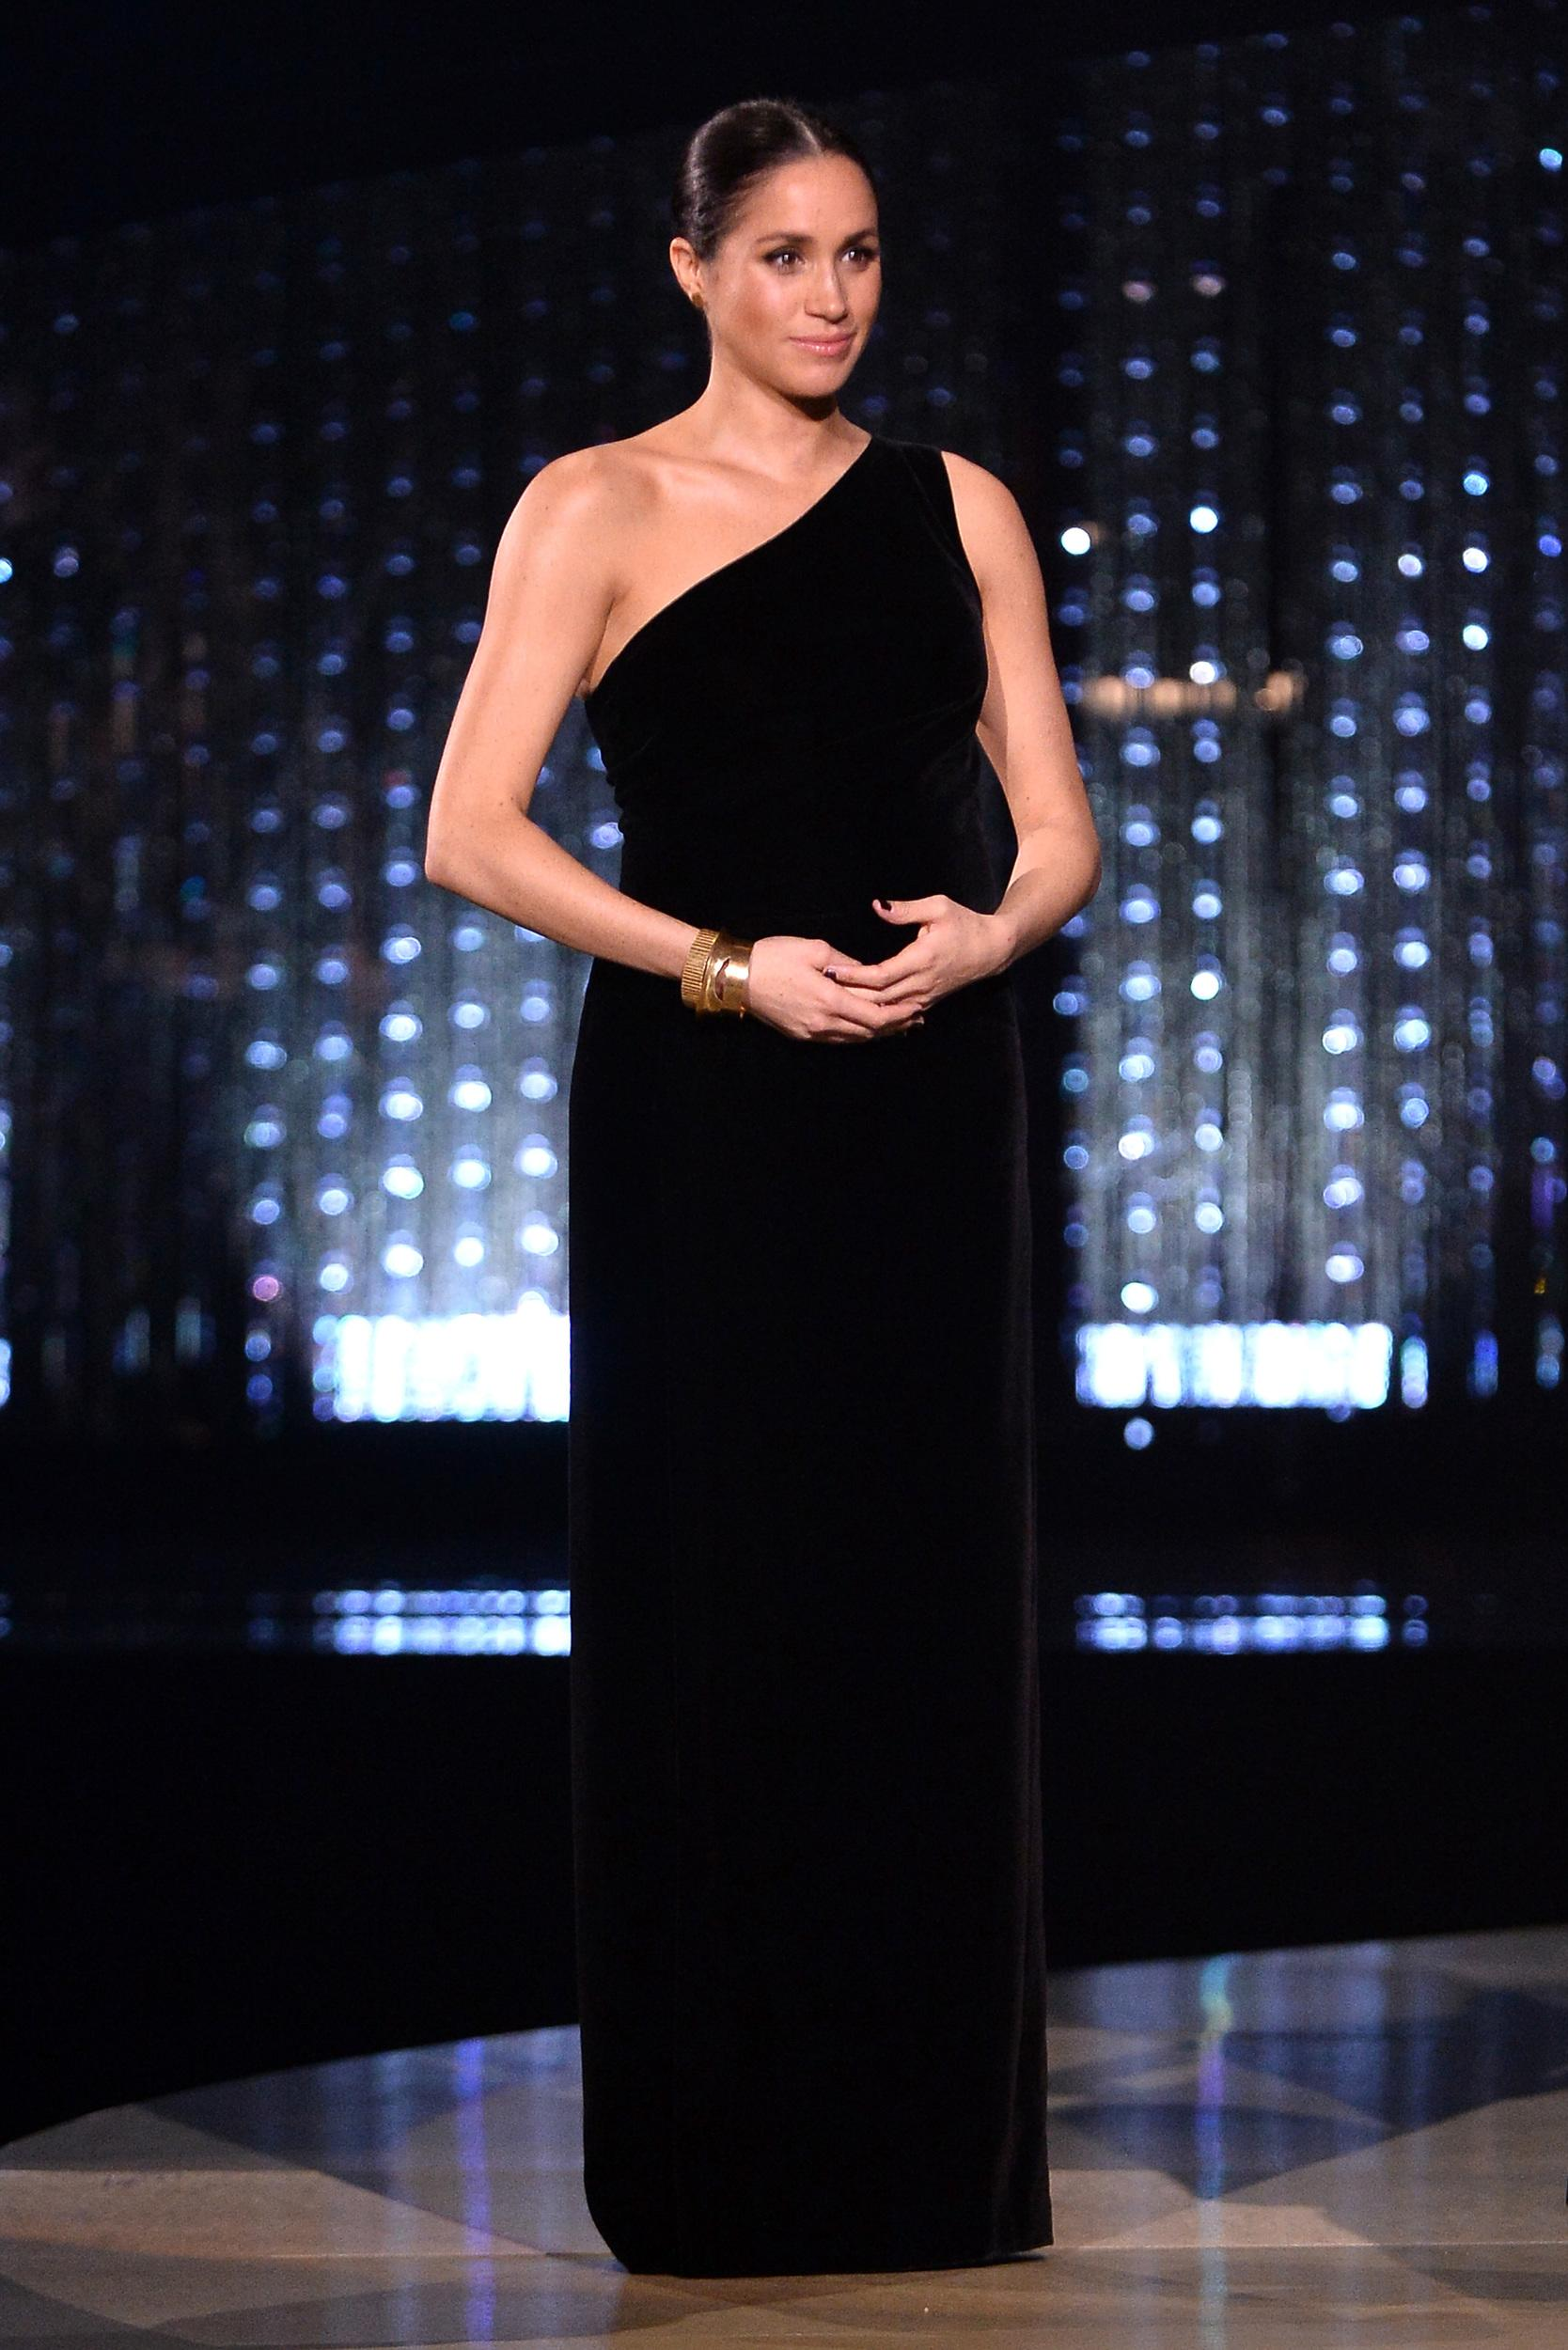 """The Duchess of Sussex made a surprise appearance at <a href=""""https://www.aol.com/article/lifestyle/2018/12/11/meghan-2018-fashion-awards-honor-givenchy-clare-waight-keller/23615230/"""">London's Fashion Awards</a> in December 2018 to presentGivenchy's Clare Waight Keller with the British Womenswear Designer of the Year award. She was wearing a custom gown by the designer."""